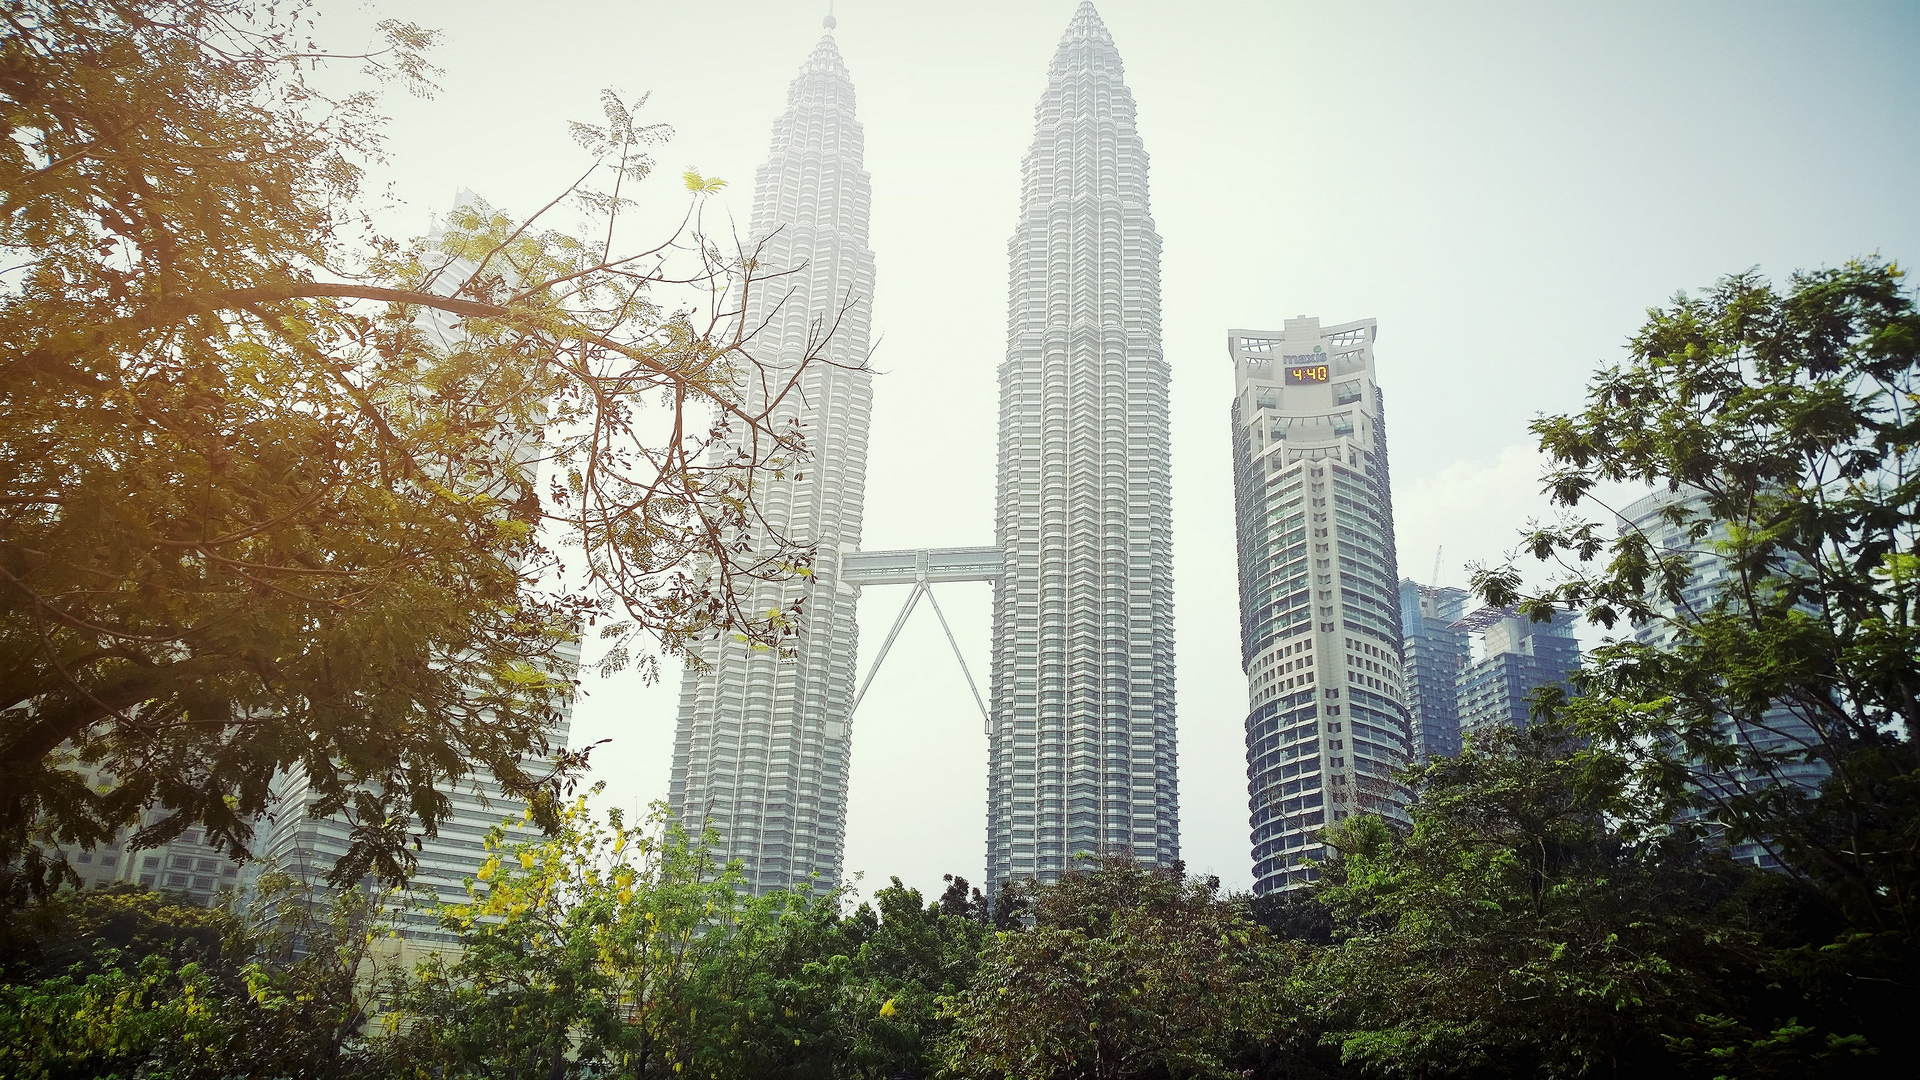 A view in Malaysia